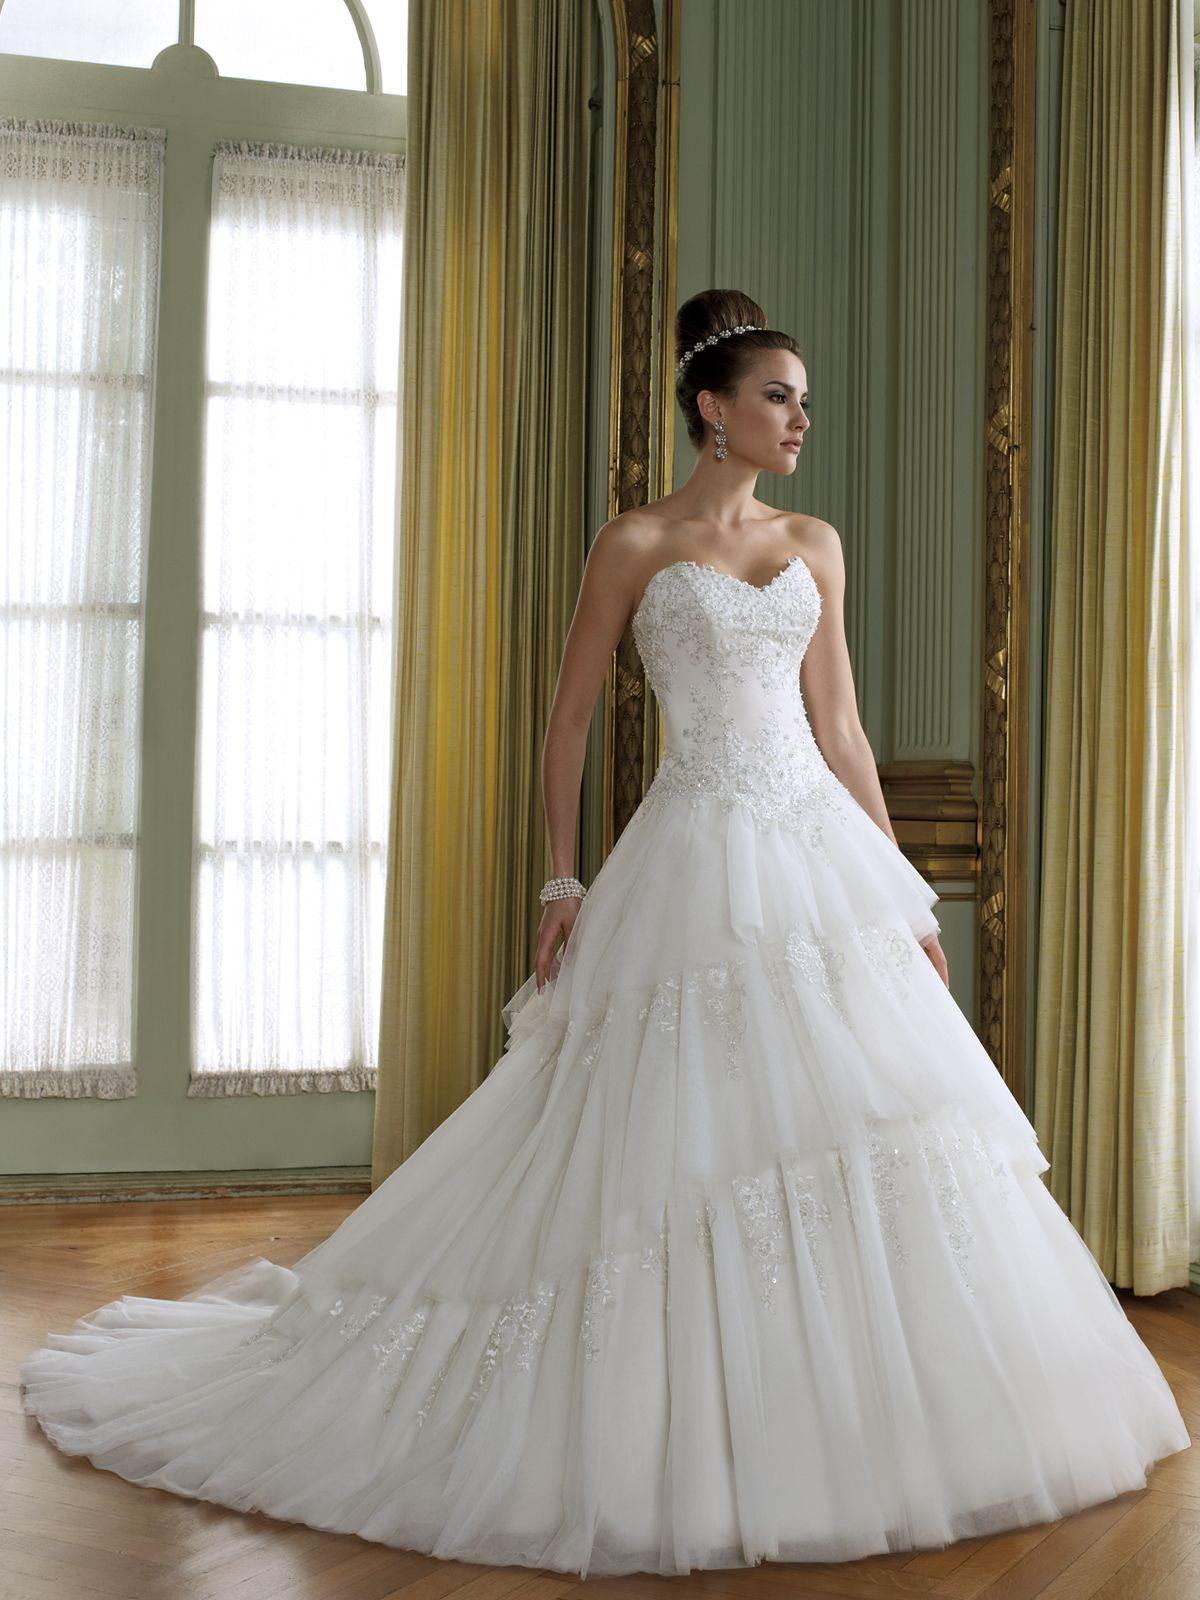 disney princess wedding dresses david tutera disney themed wedding dresses Disney Princess Wedding Dresses David Tutera 70